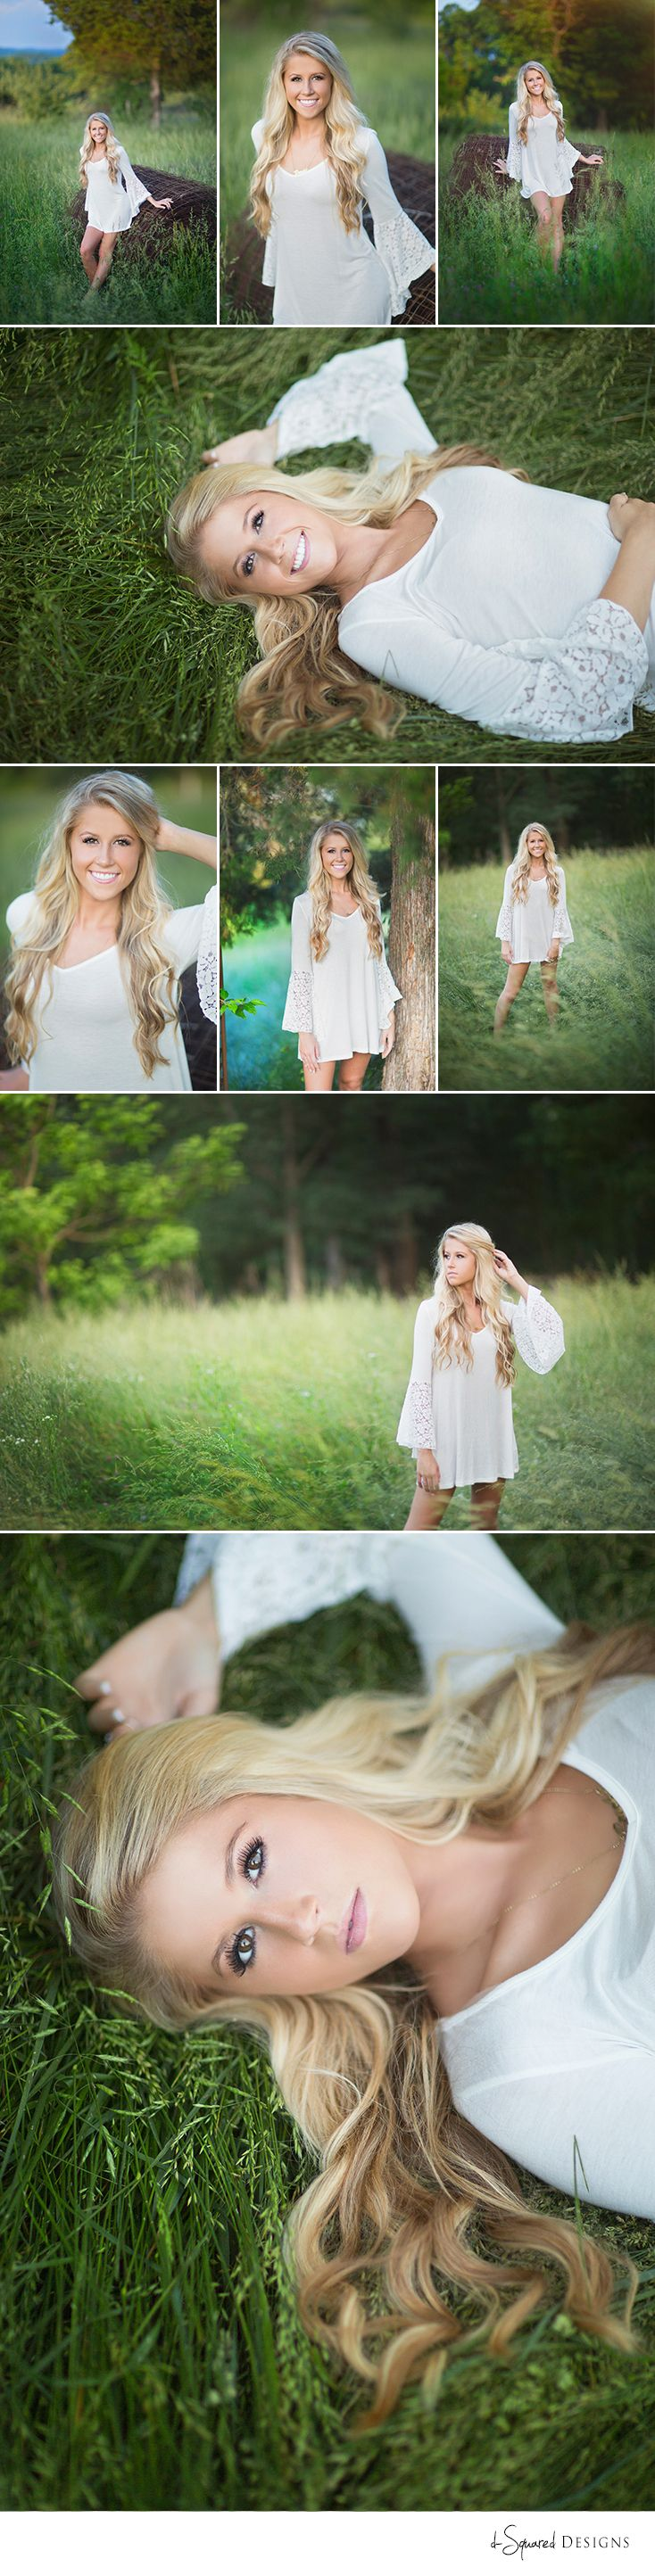 d-Squared Designs St. Louis, MO Senior Photography. Senior girl photography. Senior posing. Girl posing. Blonde. White dress. Gorgeous. Barbie girl.